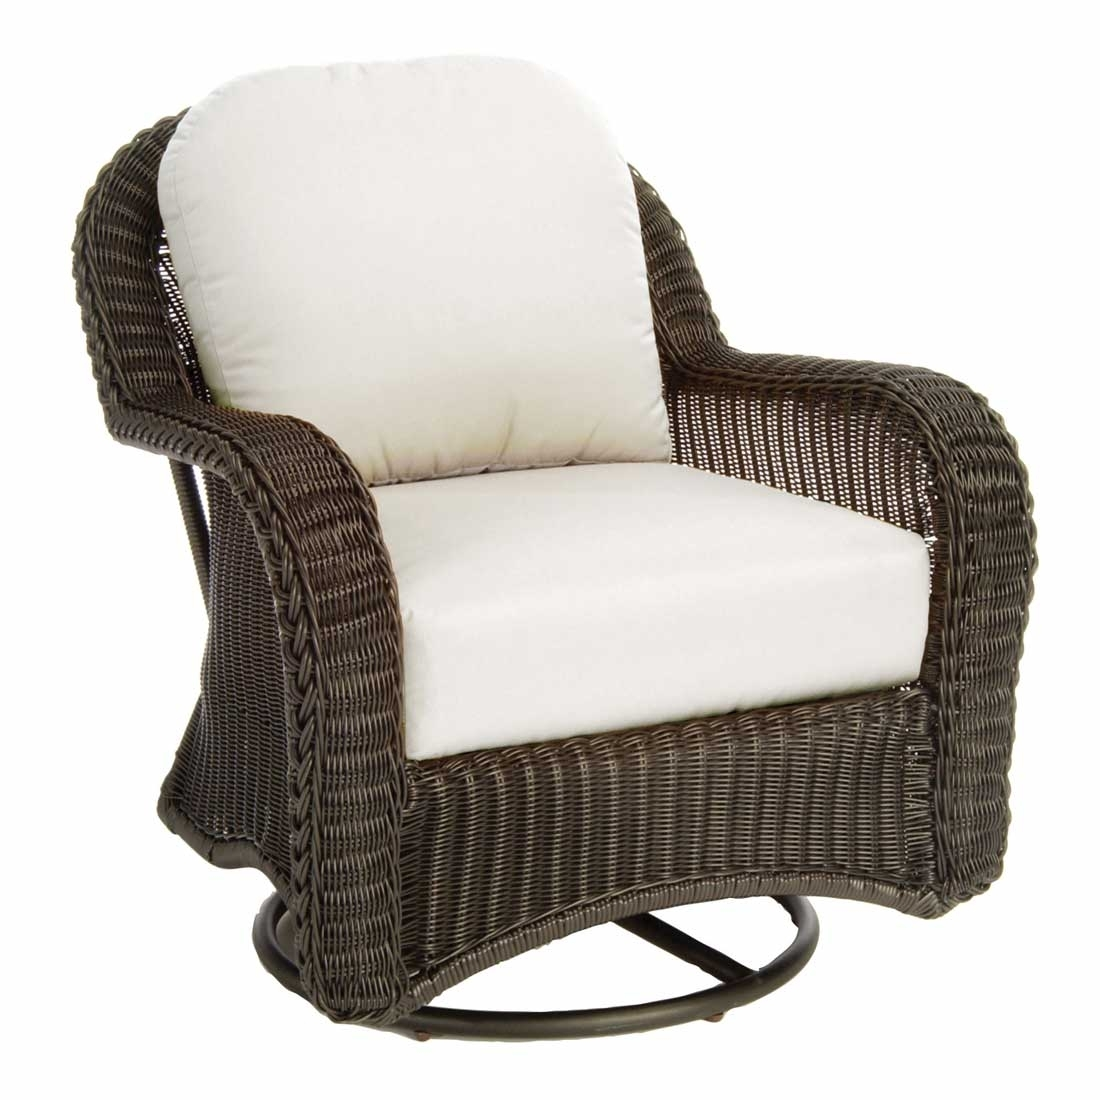 Classic Outdoor Wicker Swivel Glider Intended For Patio Rocking Chairs And Gliders (#5 of 15)